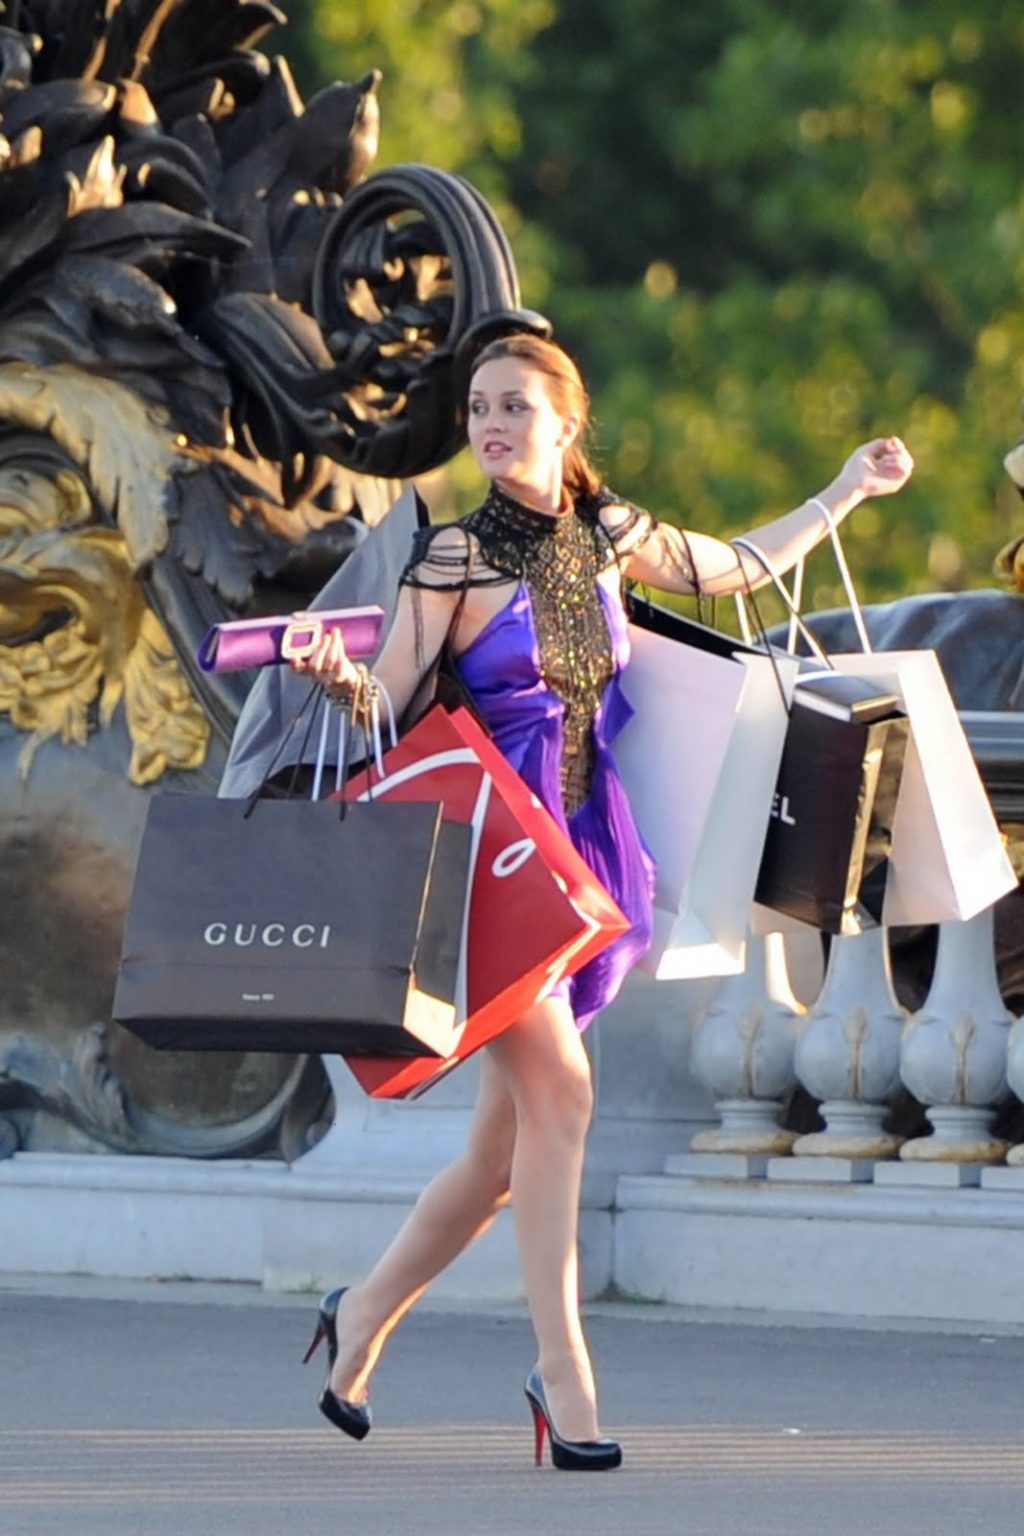 Ready, Steady, Shop: What Can You Buy for Under AED 2,000 at Outlet Village?